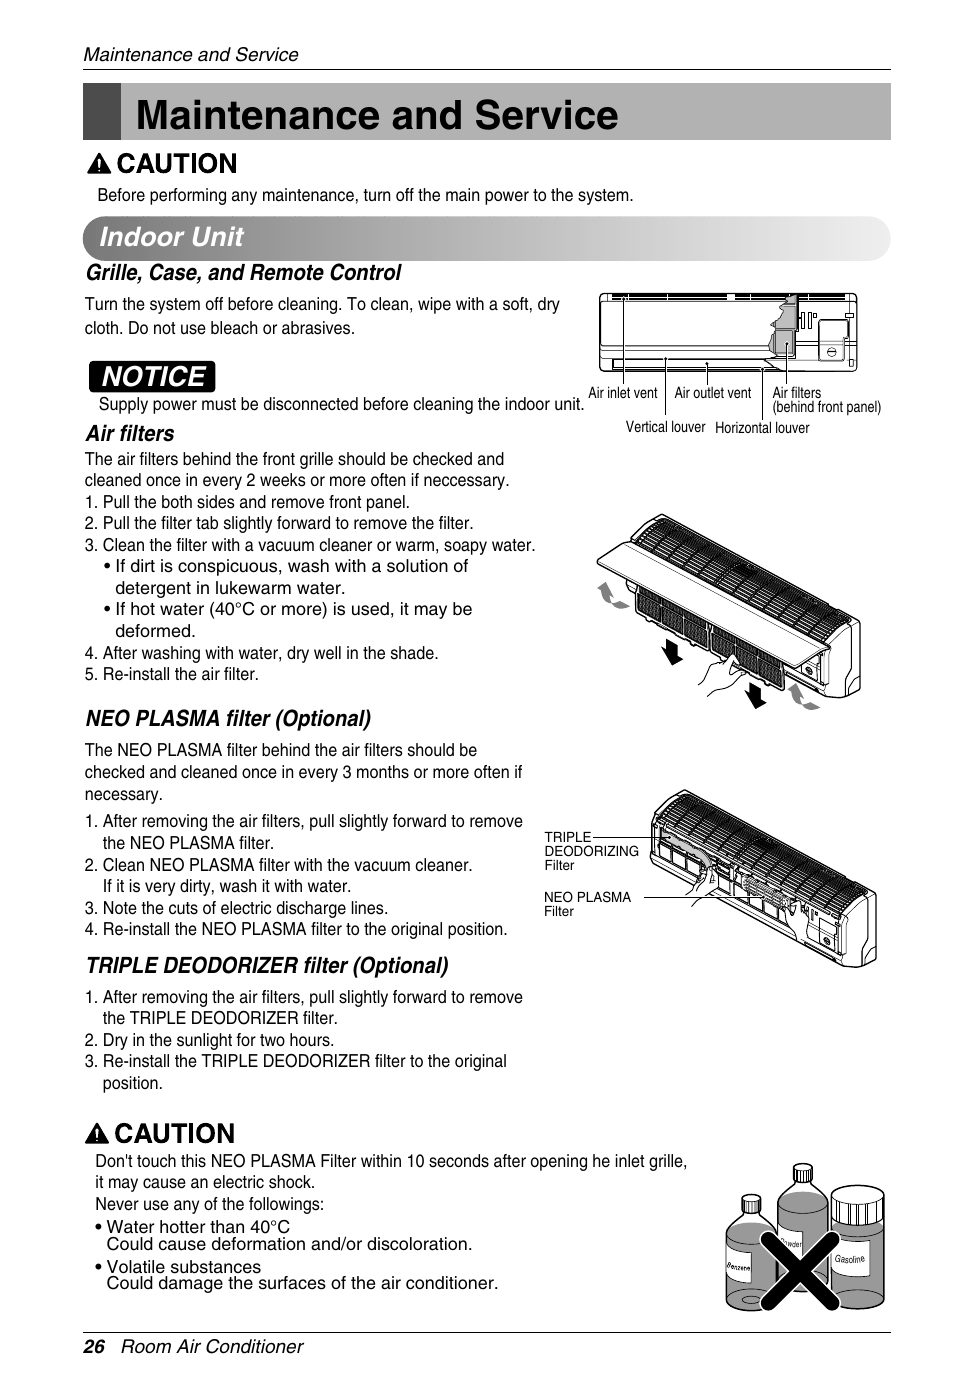 Air conditioner: lg air conditioner manual.